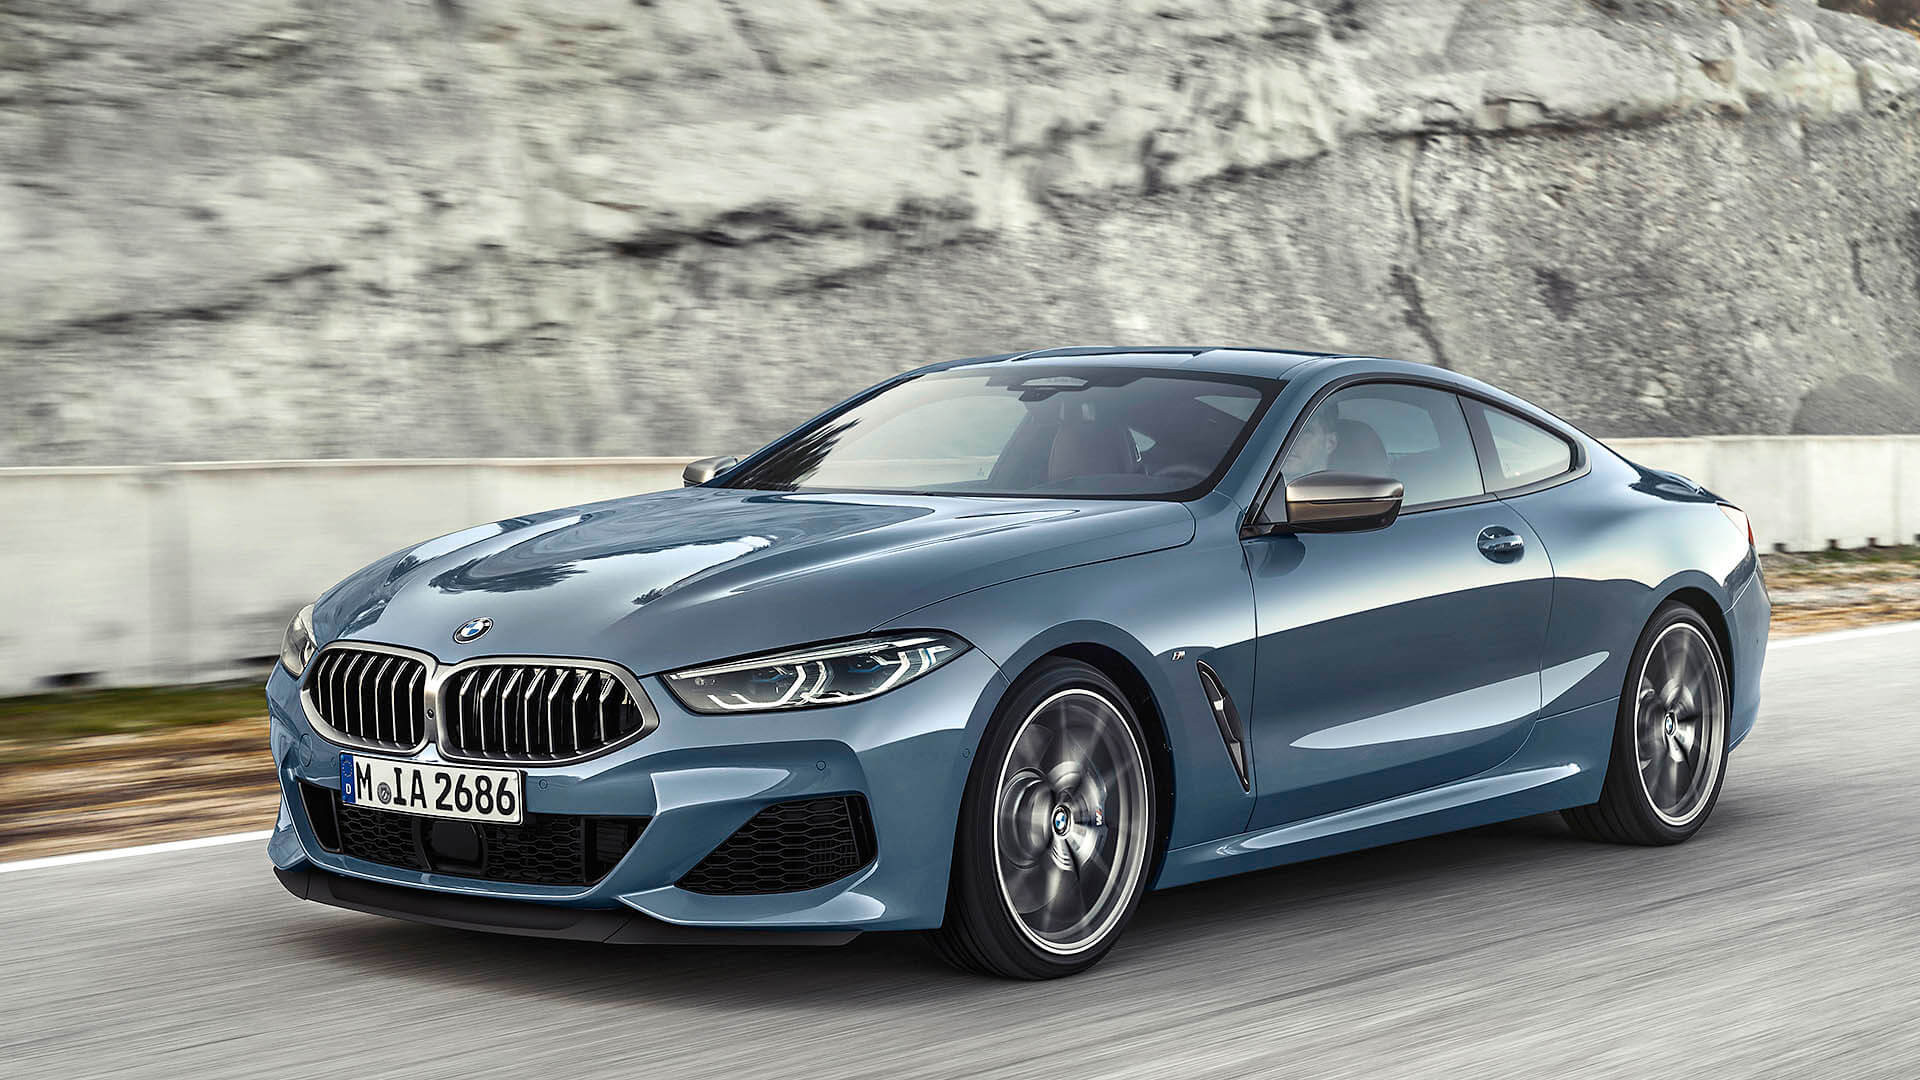 Bmw 8 Series Goes On Sale With 76270 Sticker Price